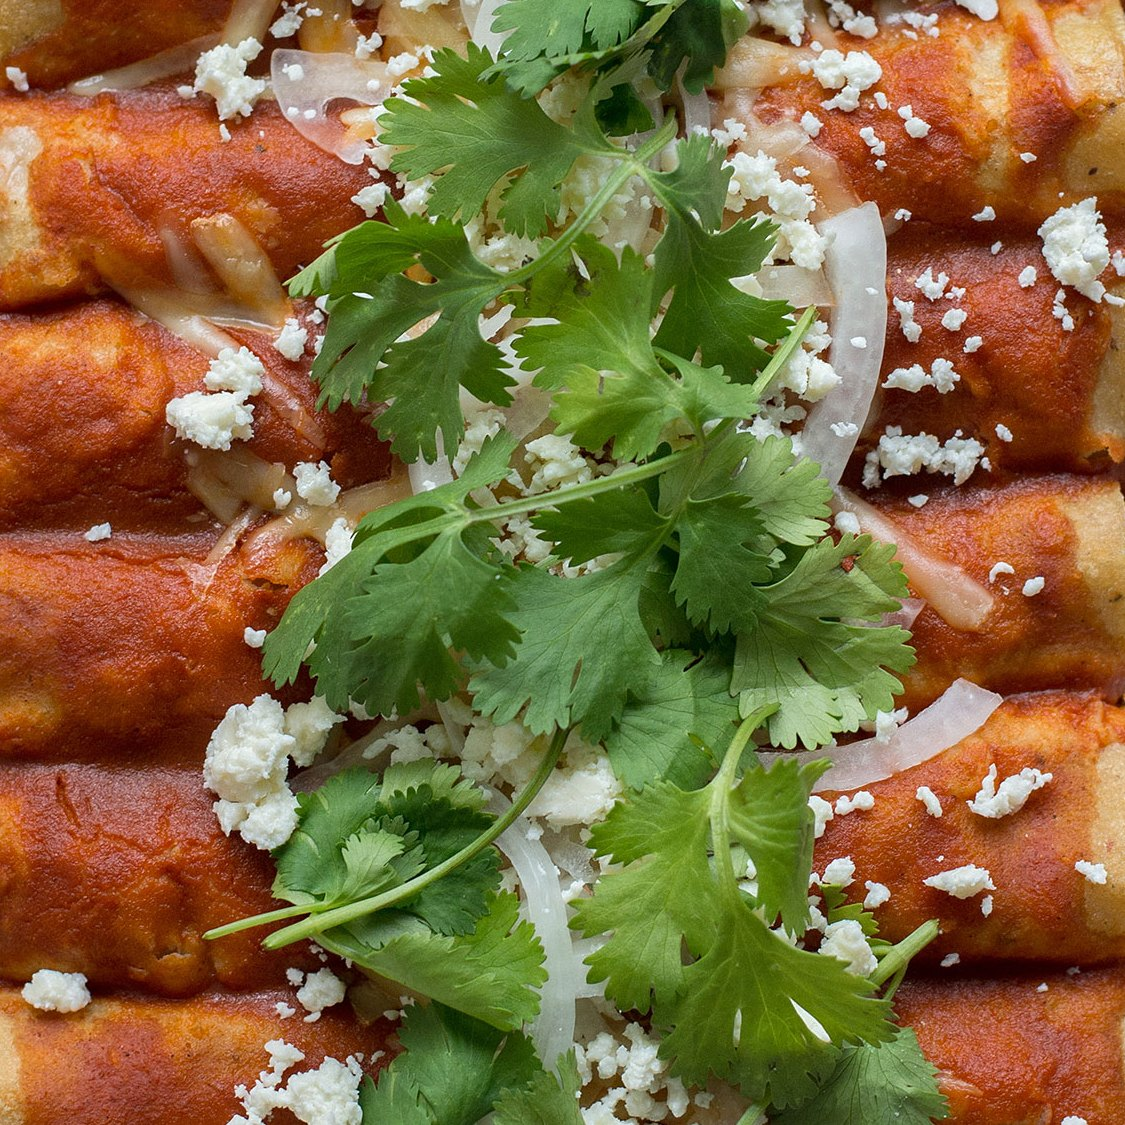 Spice-It-Up-With-This-Black-Bean,-Kale-and-Sweet-Potato-Enchiladas-Recipe